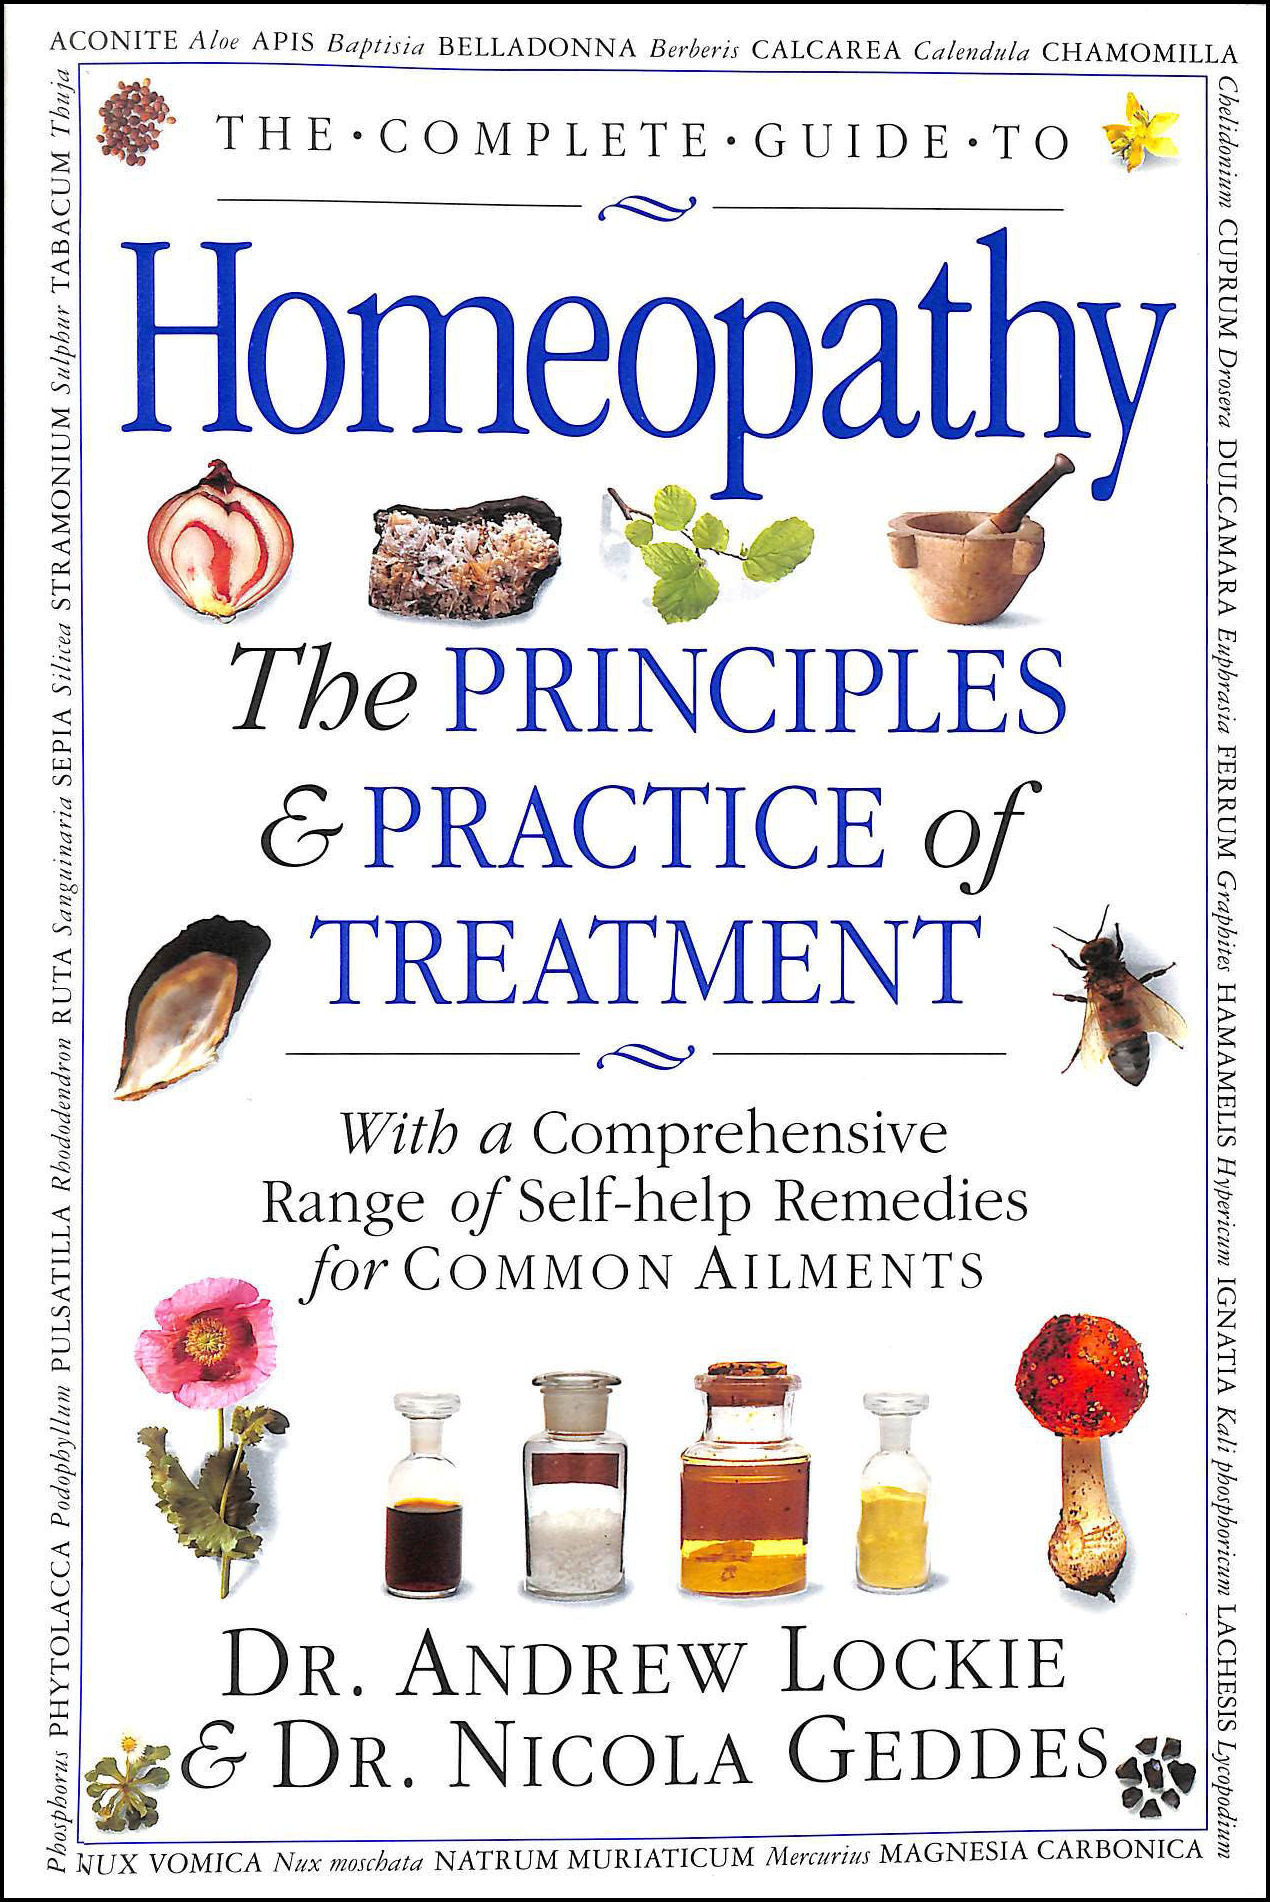 Complete Guide To Homeopathy Hb, Andrew Lockie; Nicola Geddes